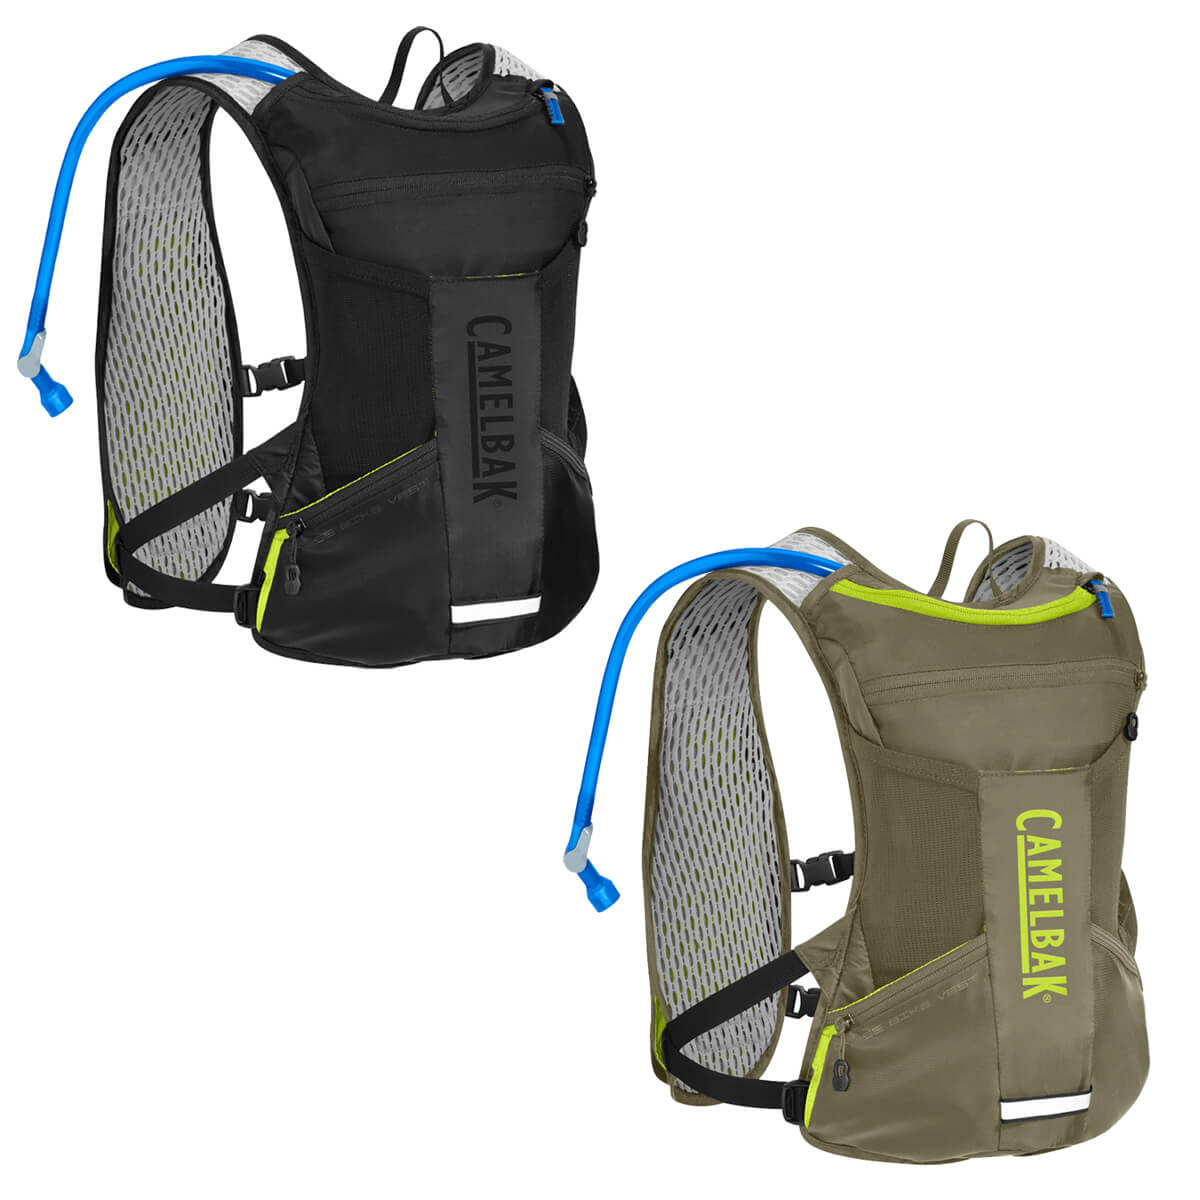 Camelbak Chase Bike Vest Hydration Backpack 1.5 Litres